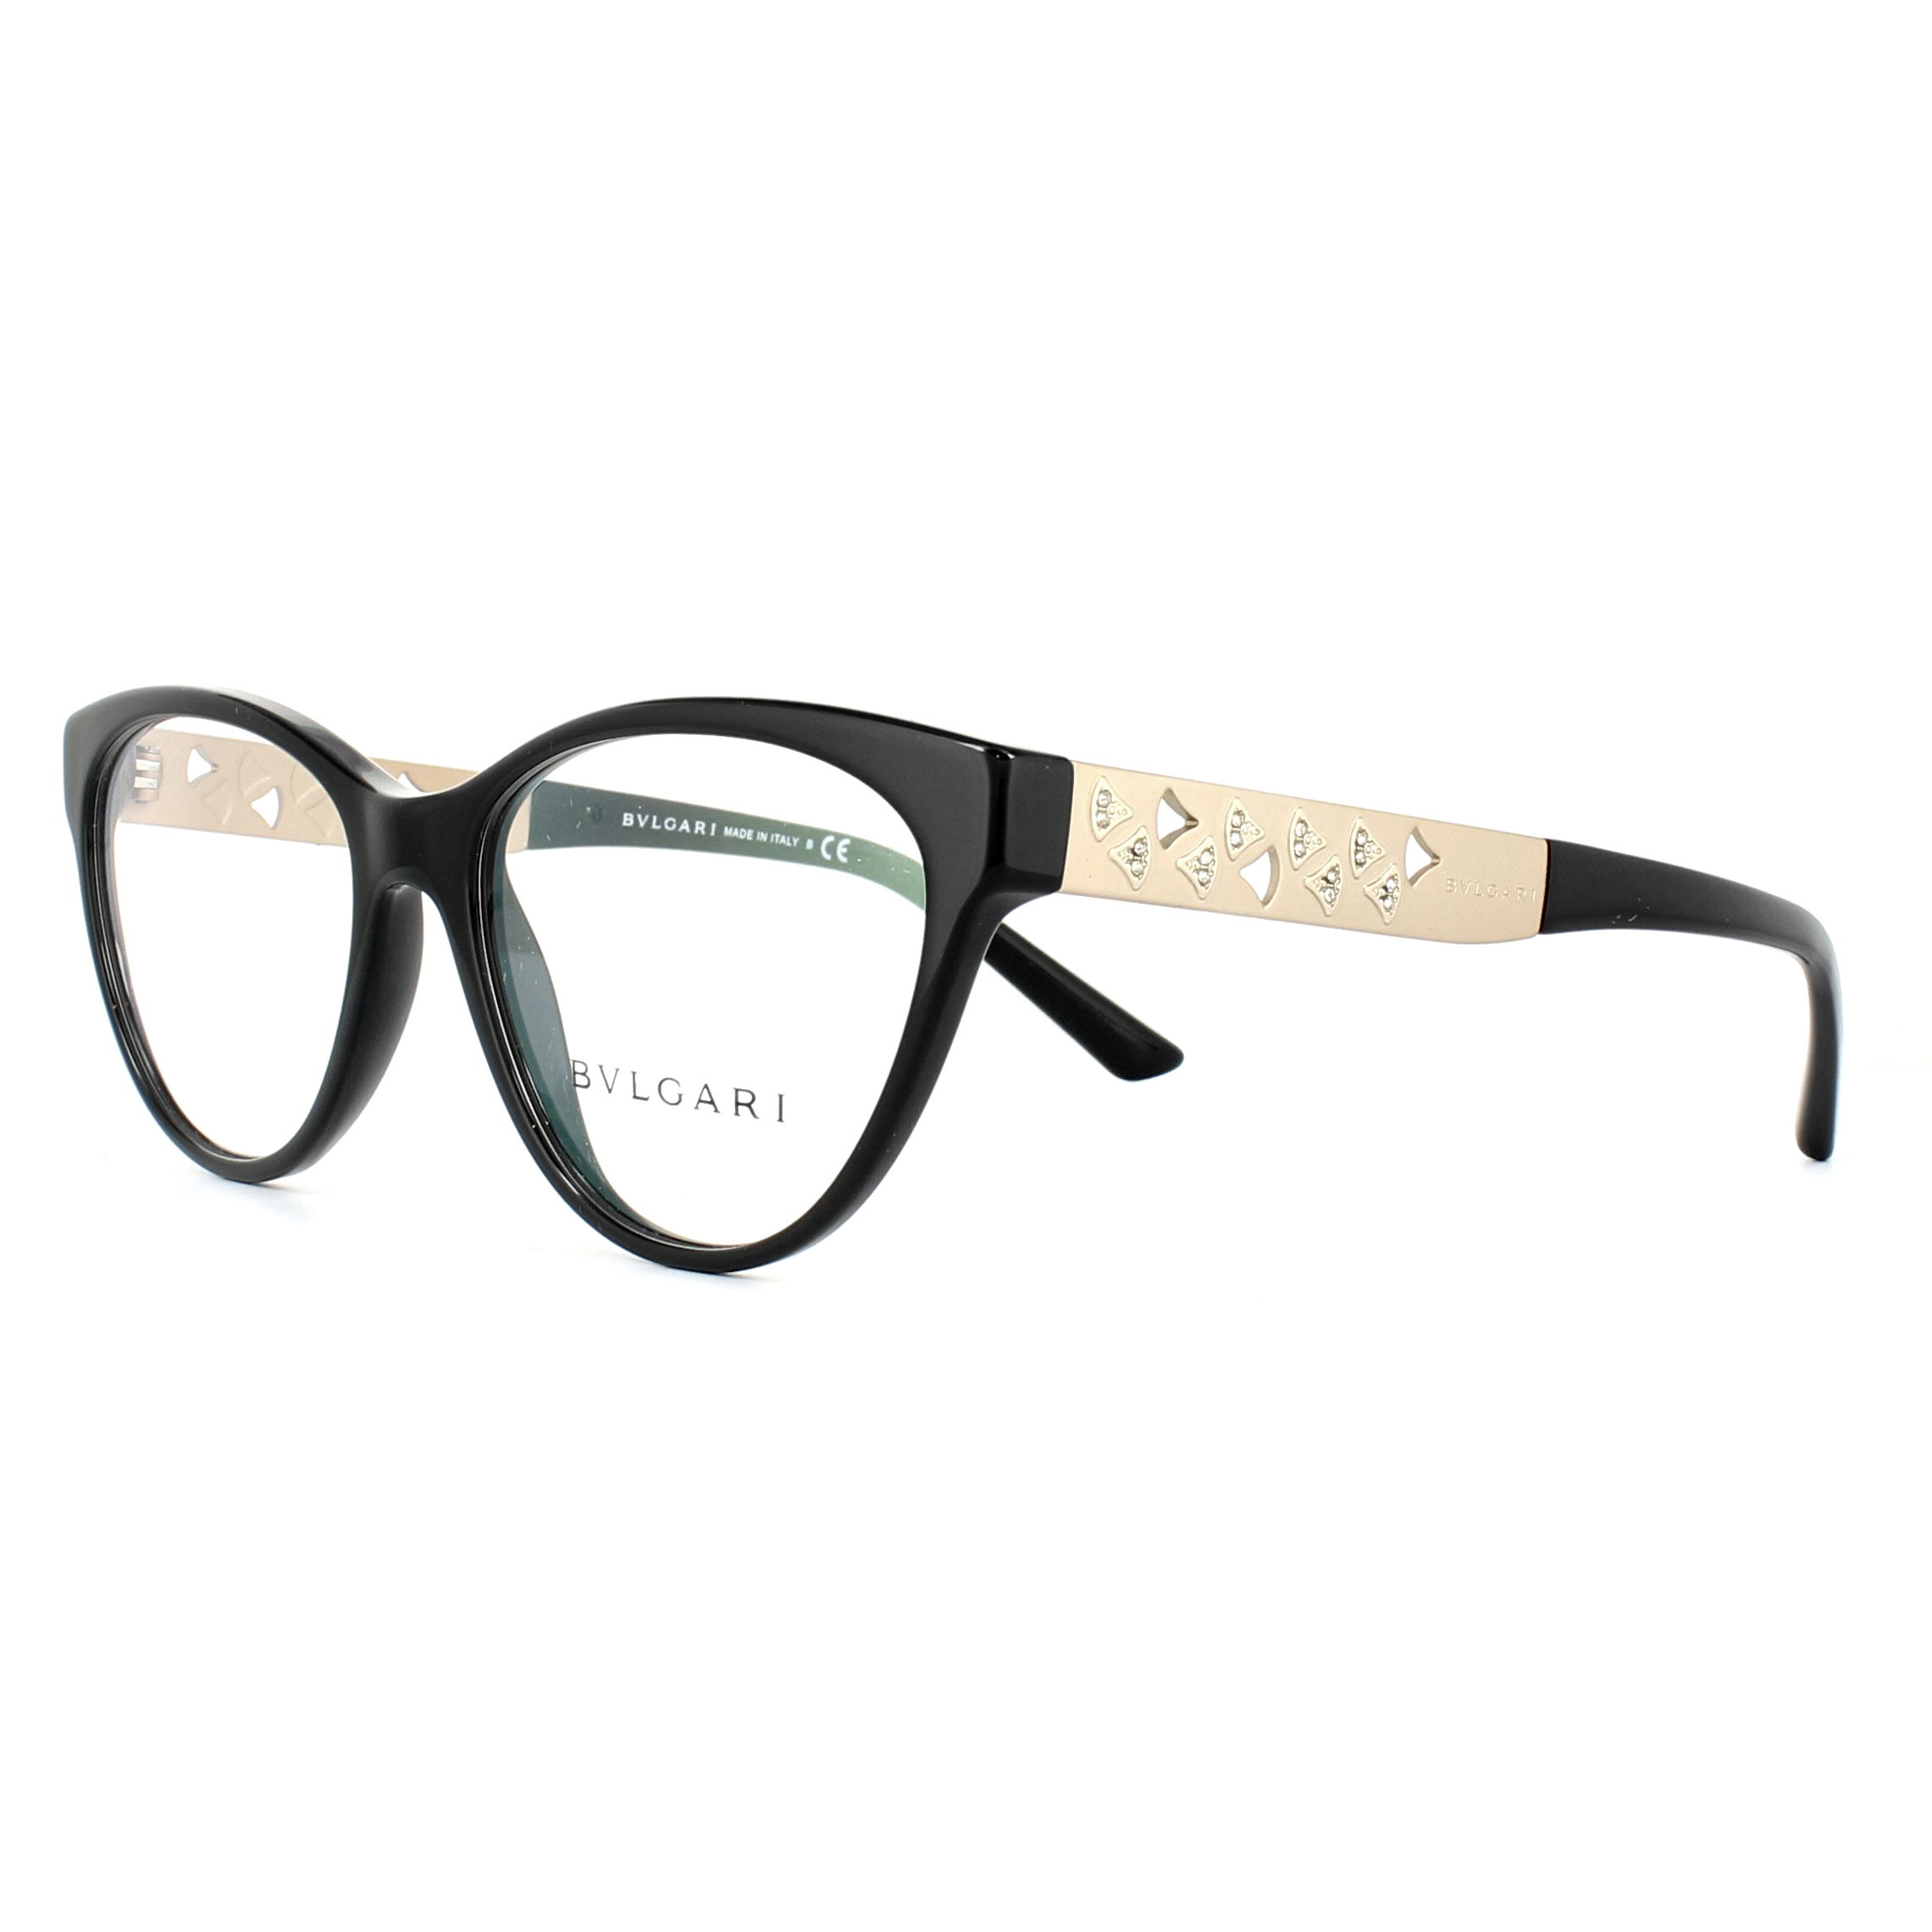 54bc95d615cb9 Sentinel Bvlgari Glasses Frames 4154B 501 Black Rose Gold 52mm Womens